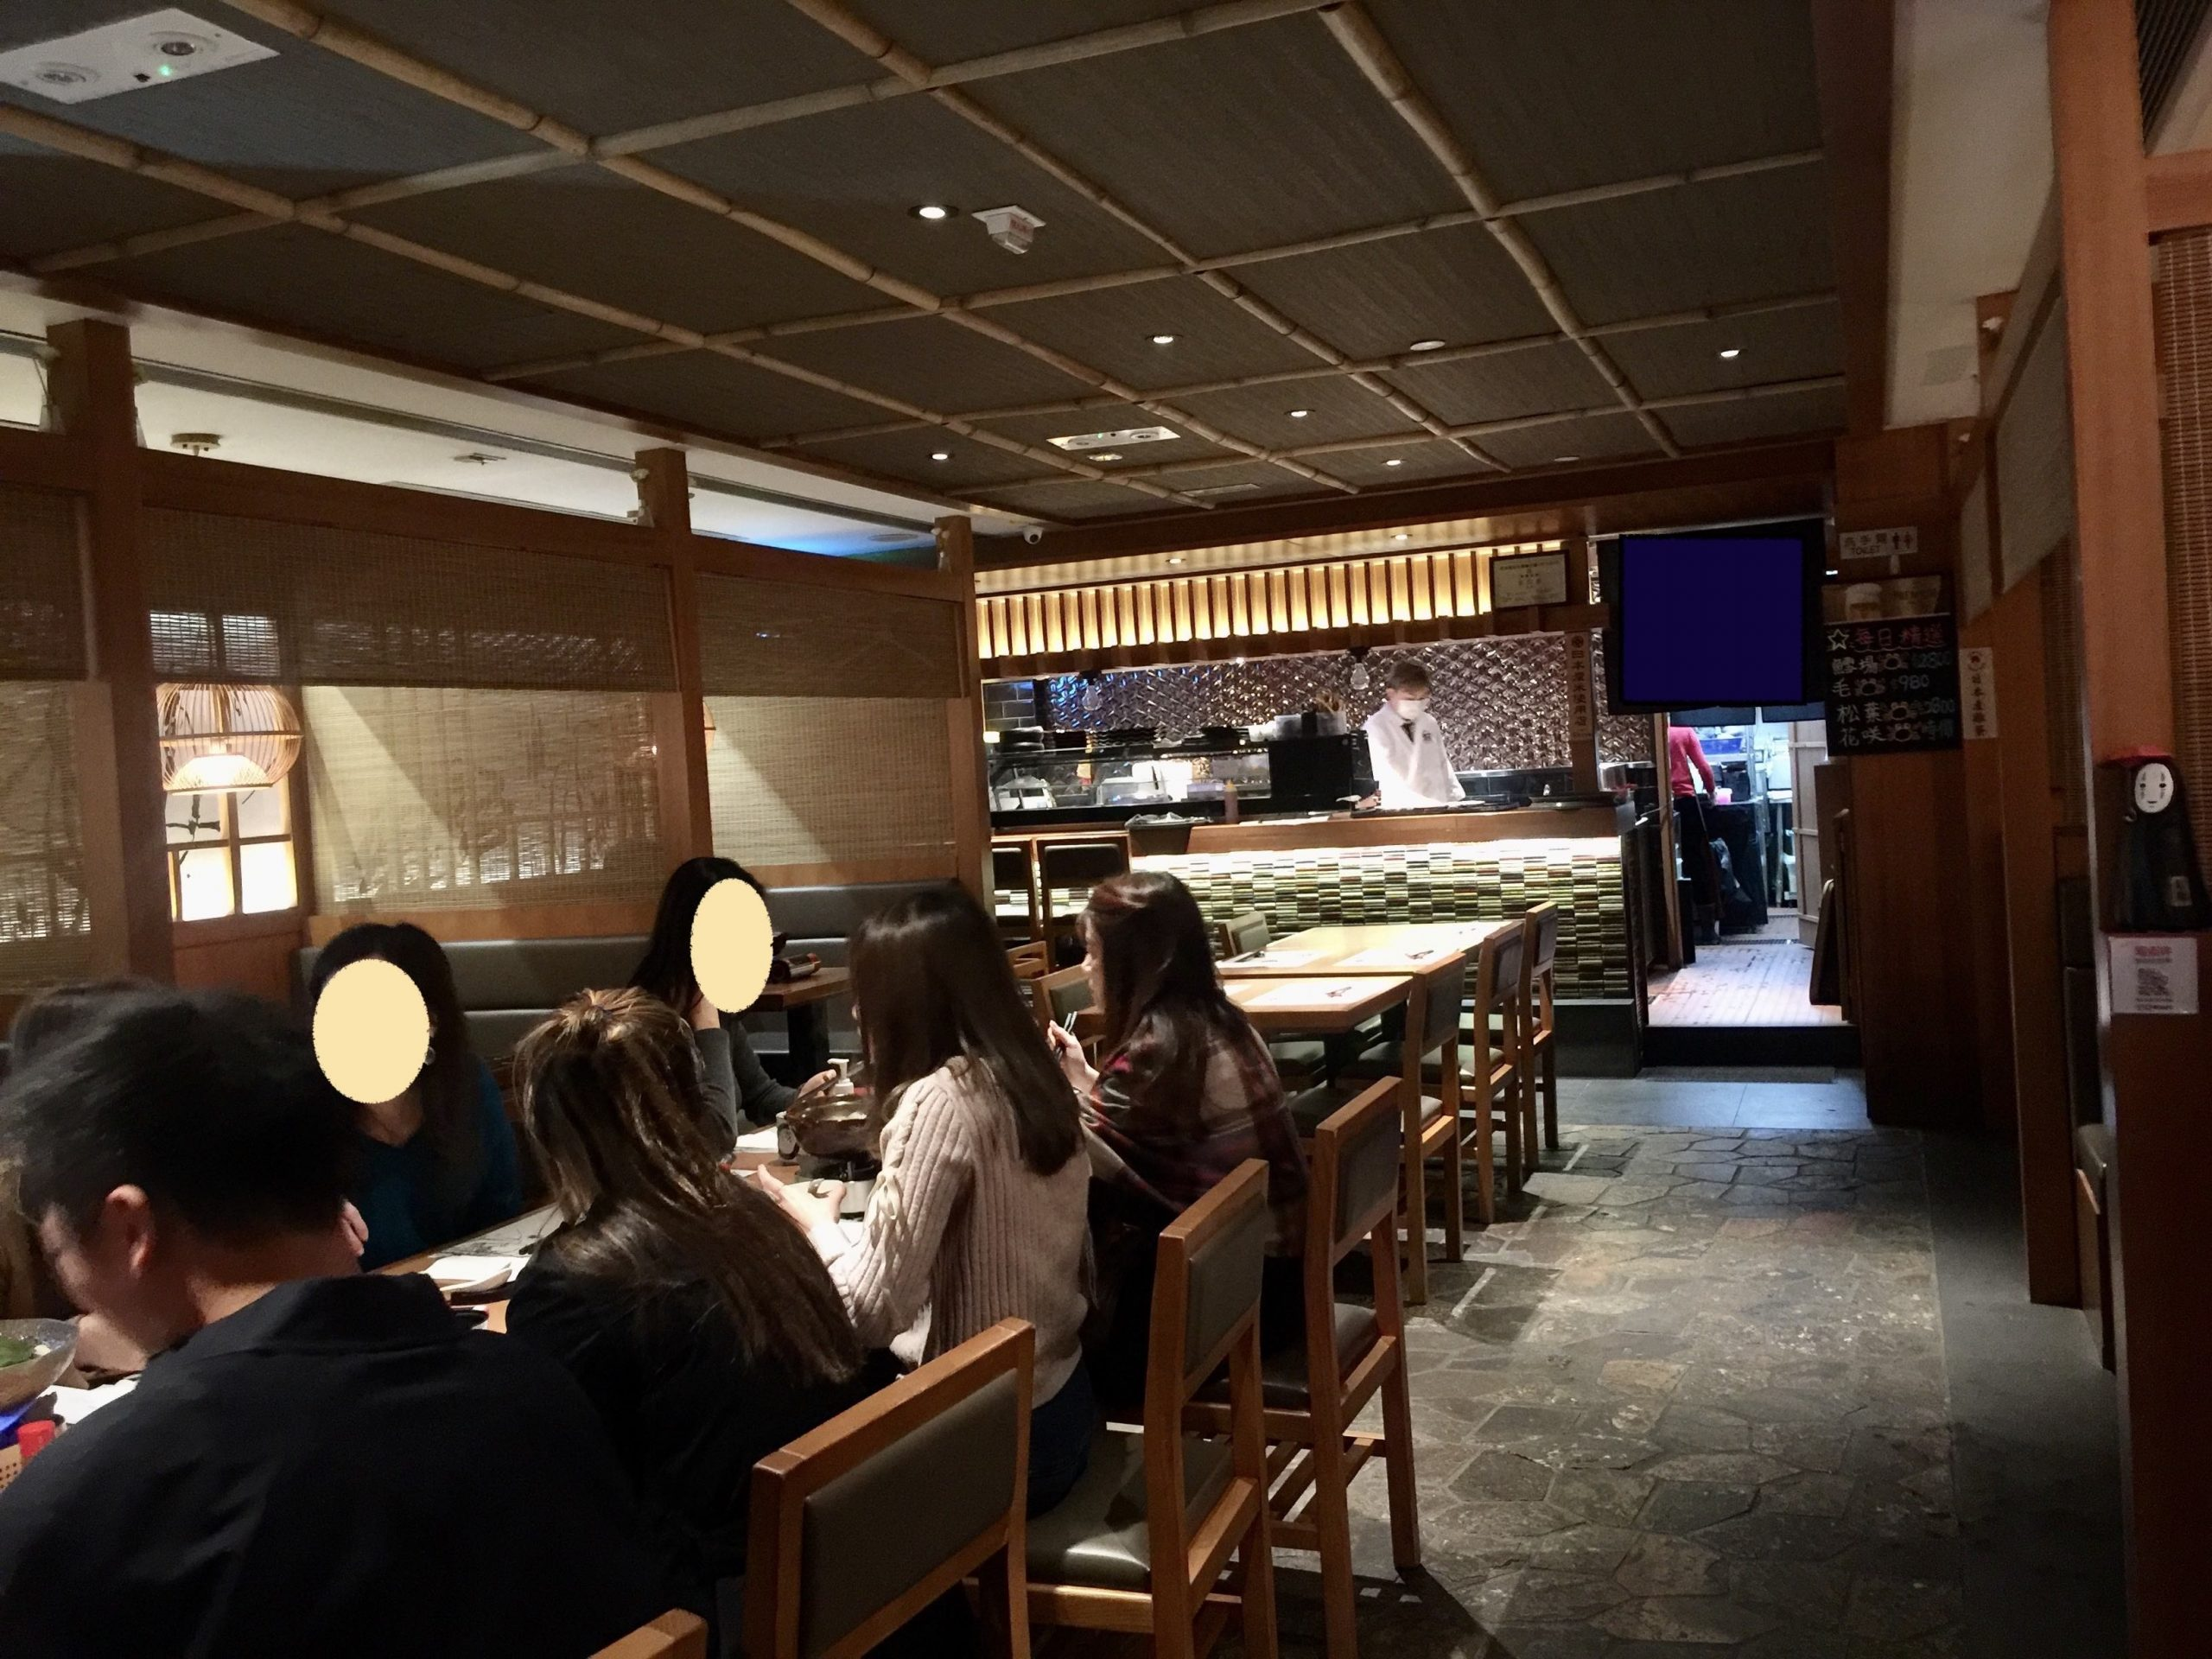 Causeway Bay Fitted Restaurant for Lease in Hong Kong